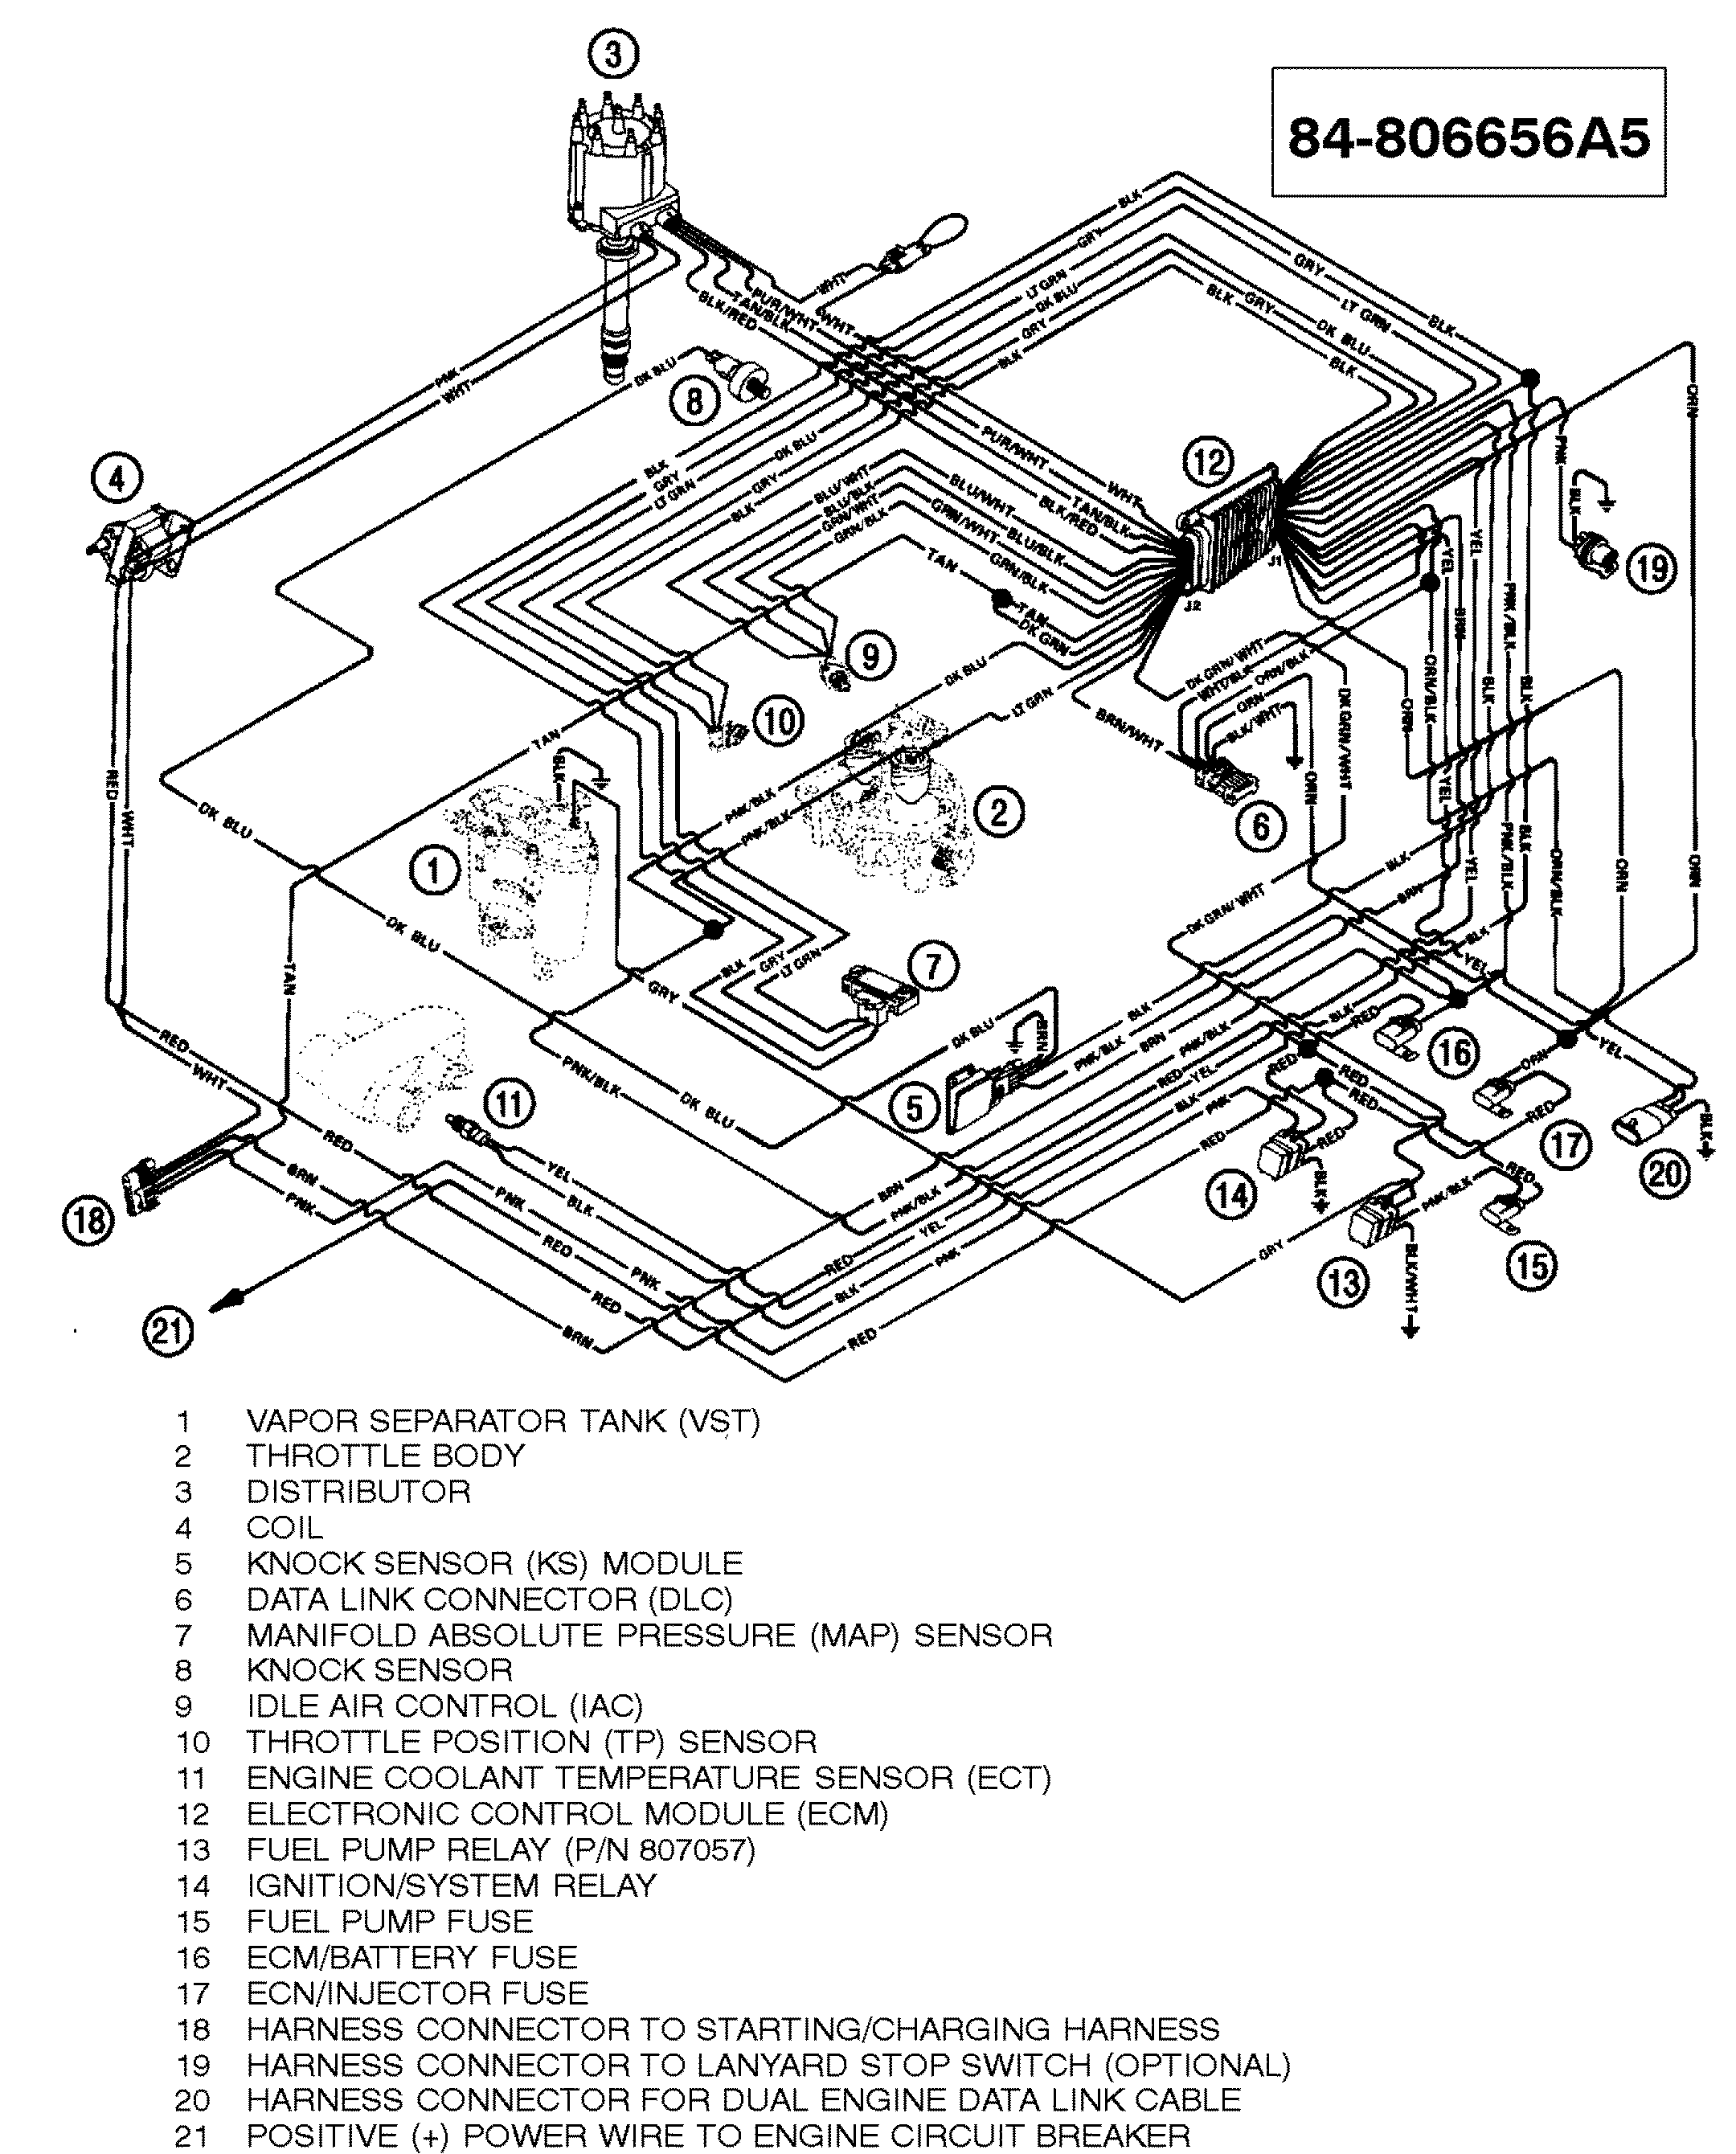 350 Tbi Wiring Diagram from www.hardin-marine.com